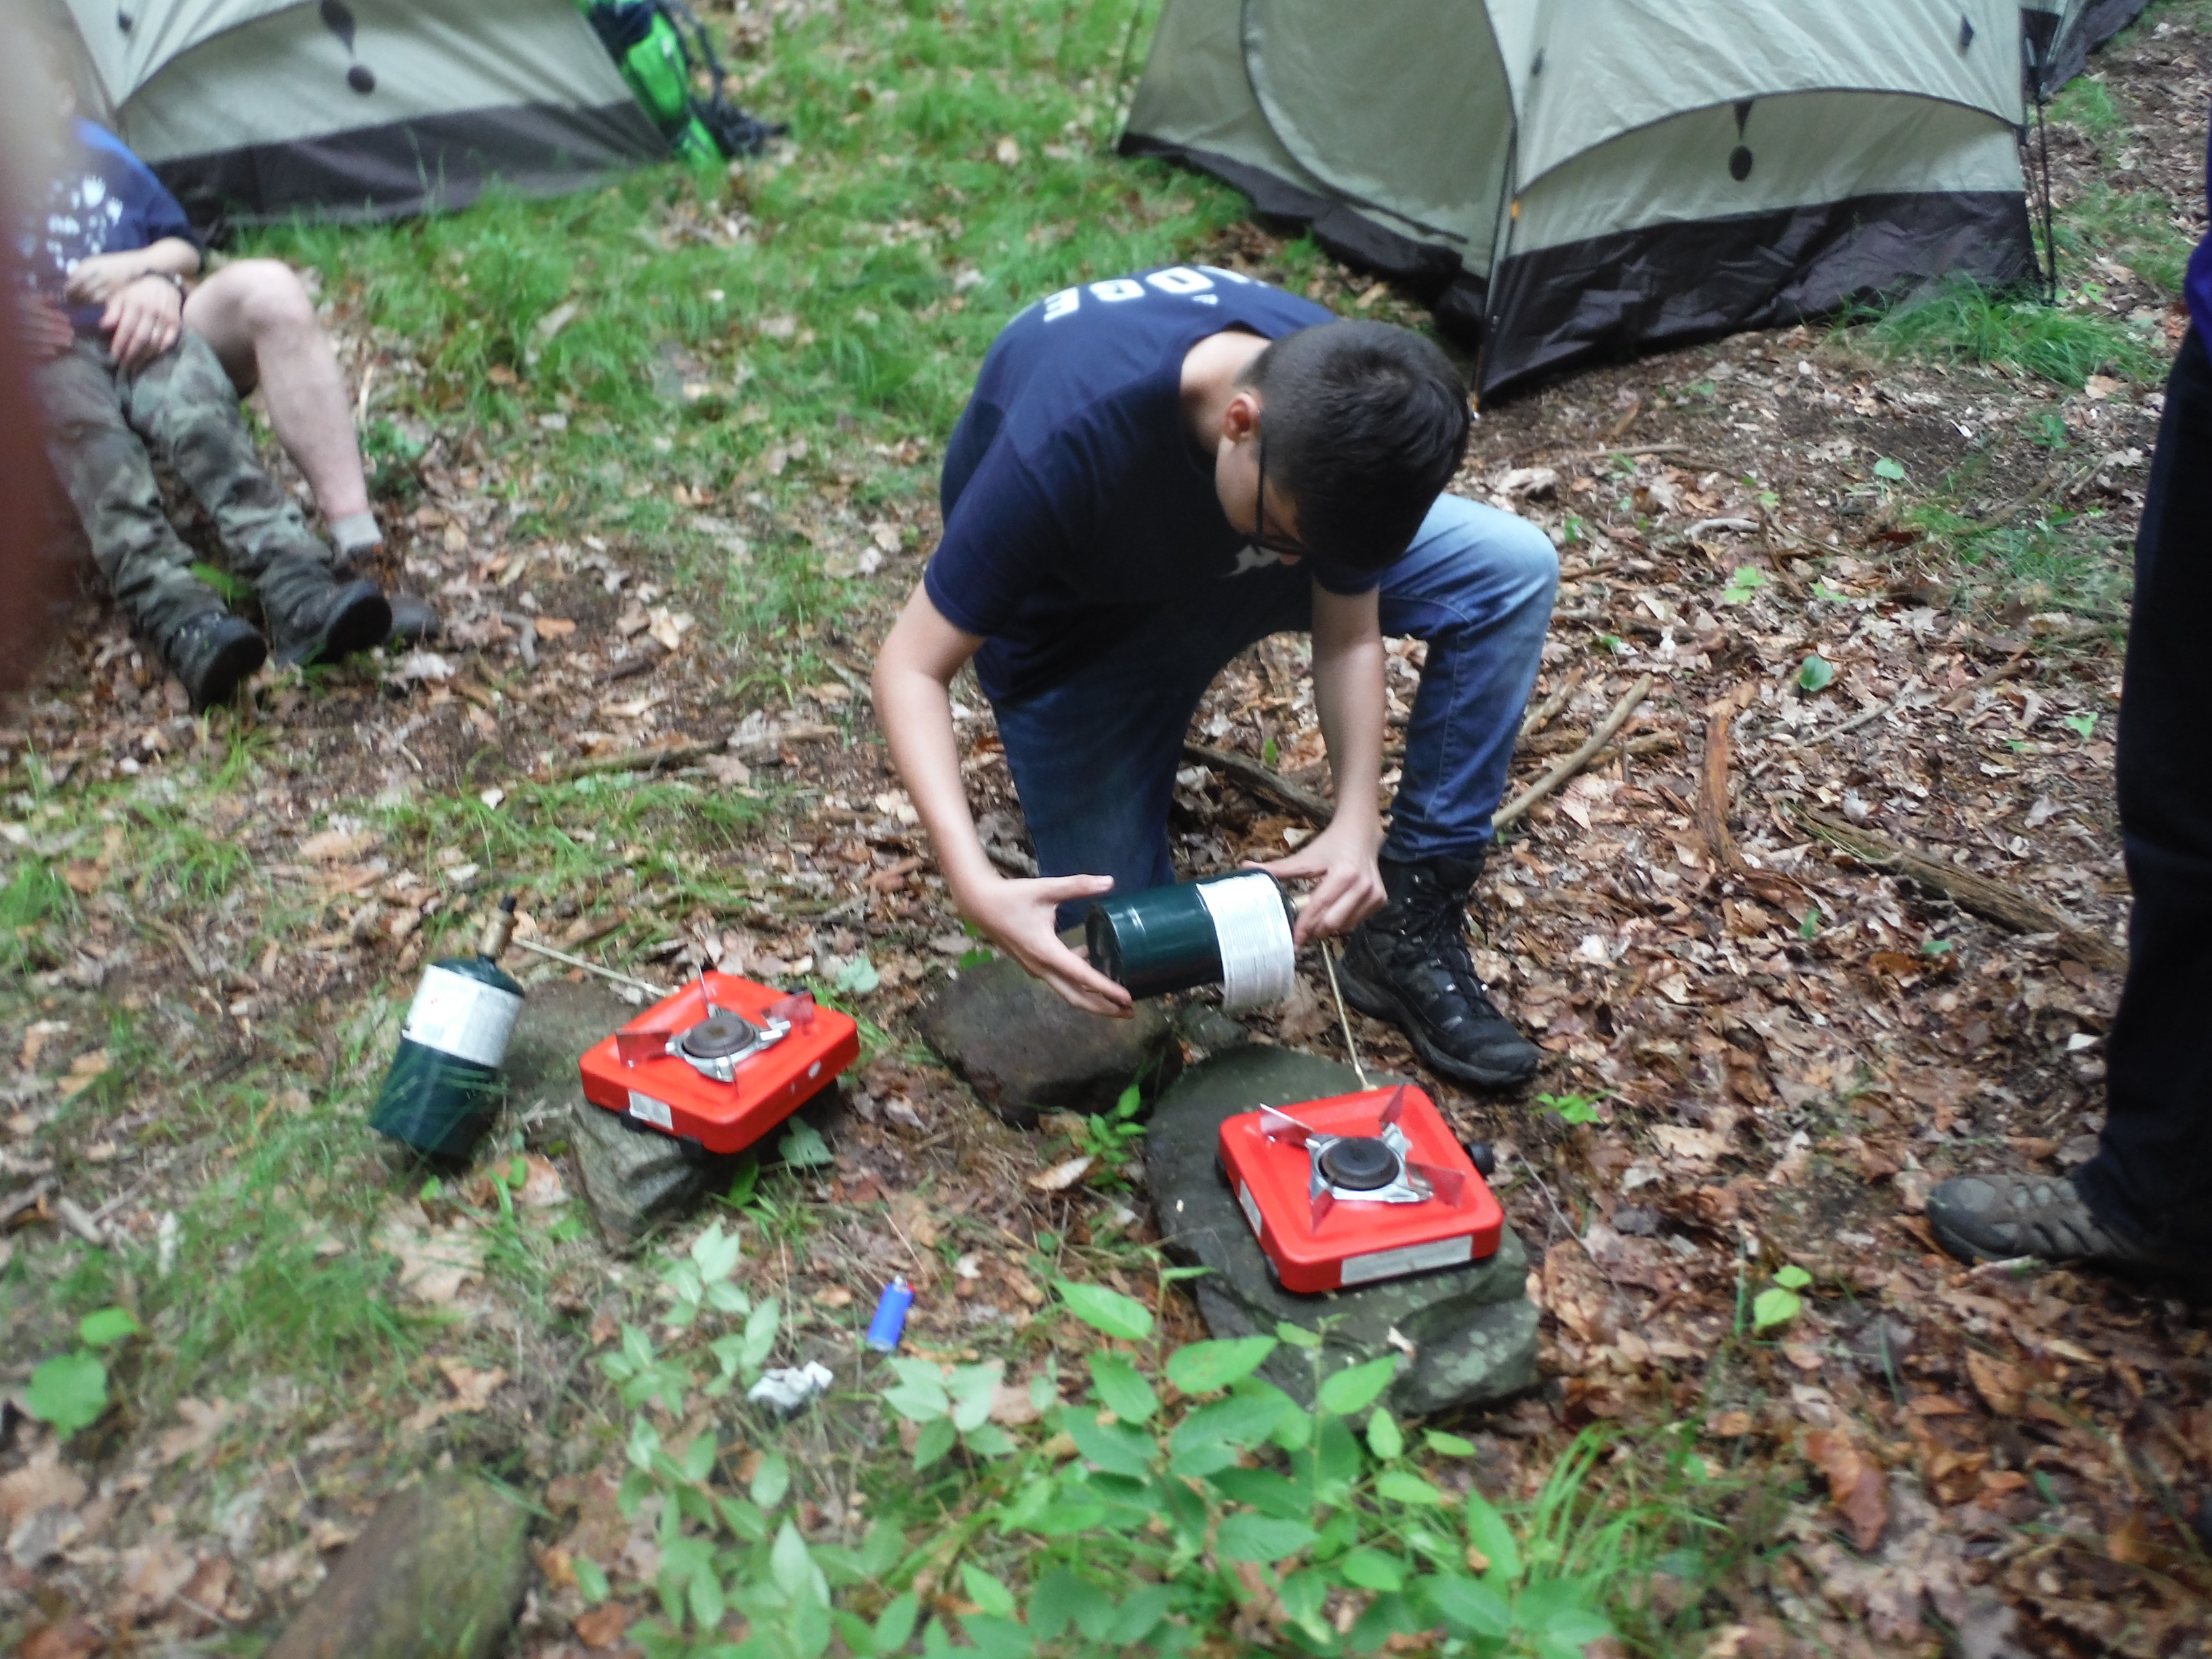 setting up stoves